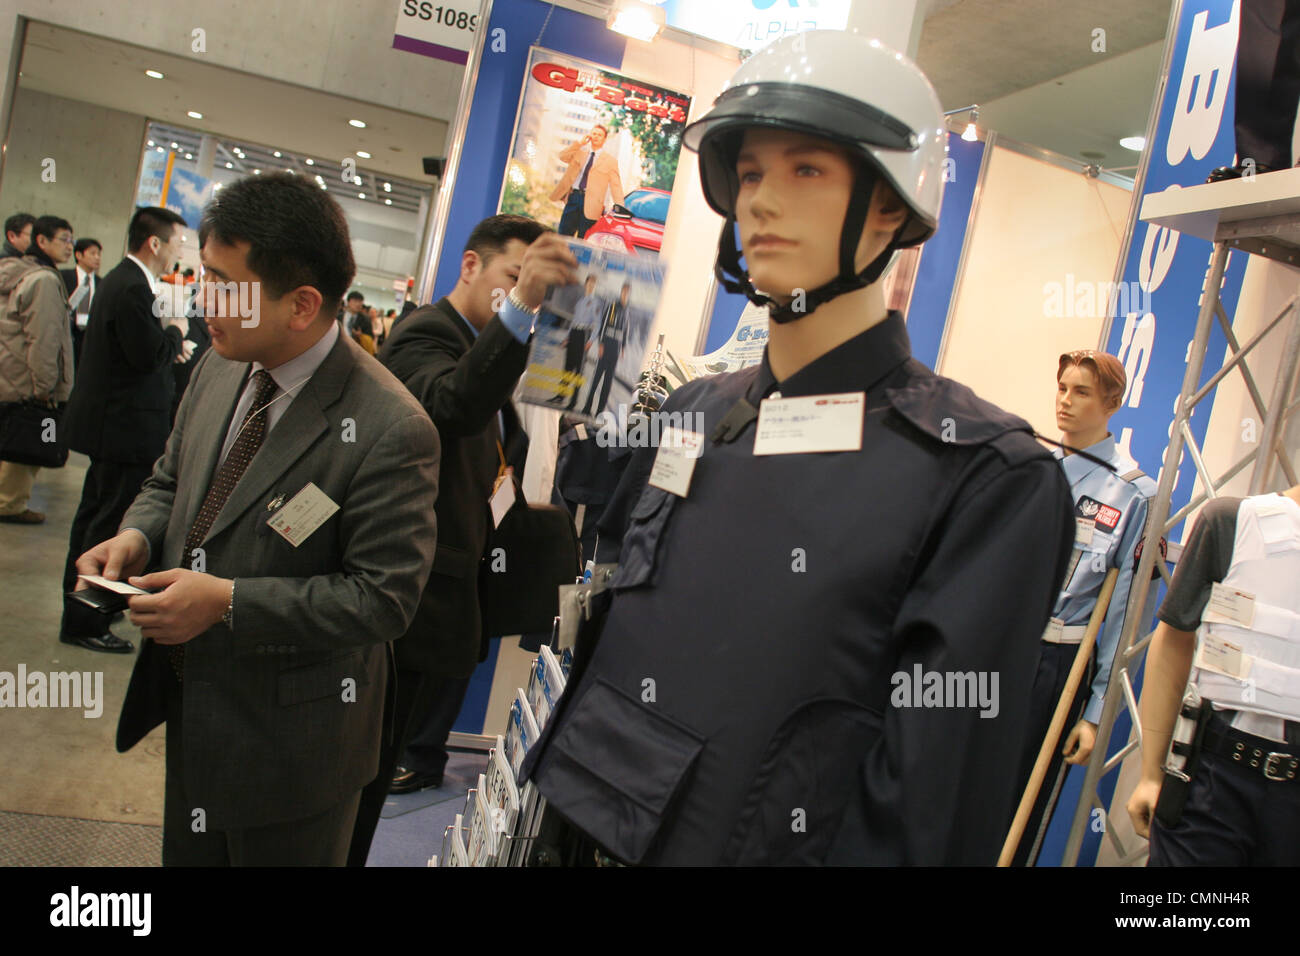 Security personnel uniforms and clothing on display at 'Security Show' in Tokyo, Japan. - Stock Image